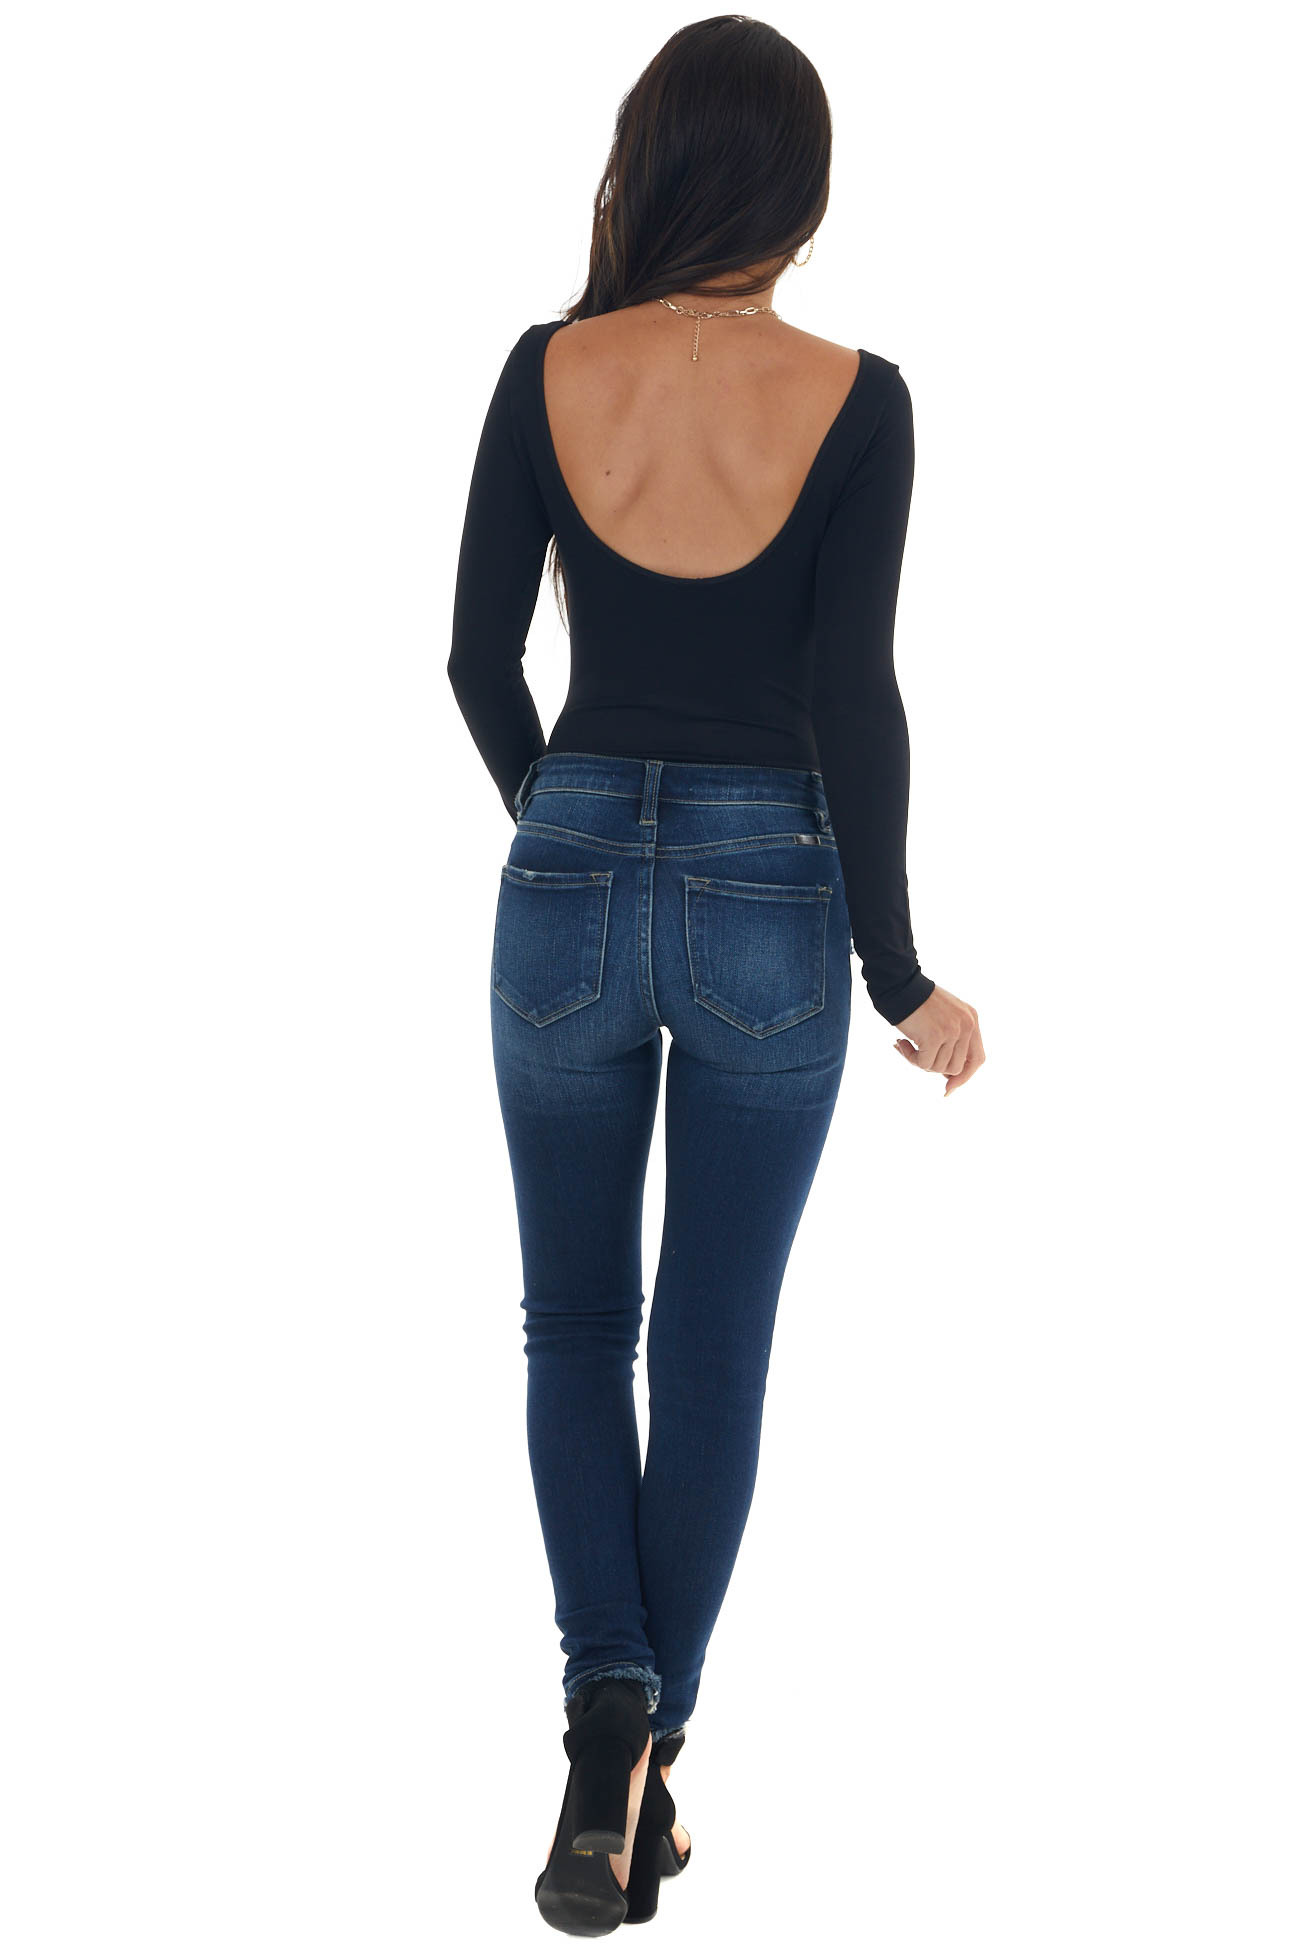 Black Seamless Boat Neck Bodysuit with Low Back